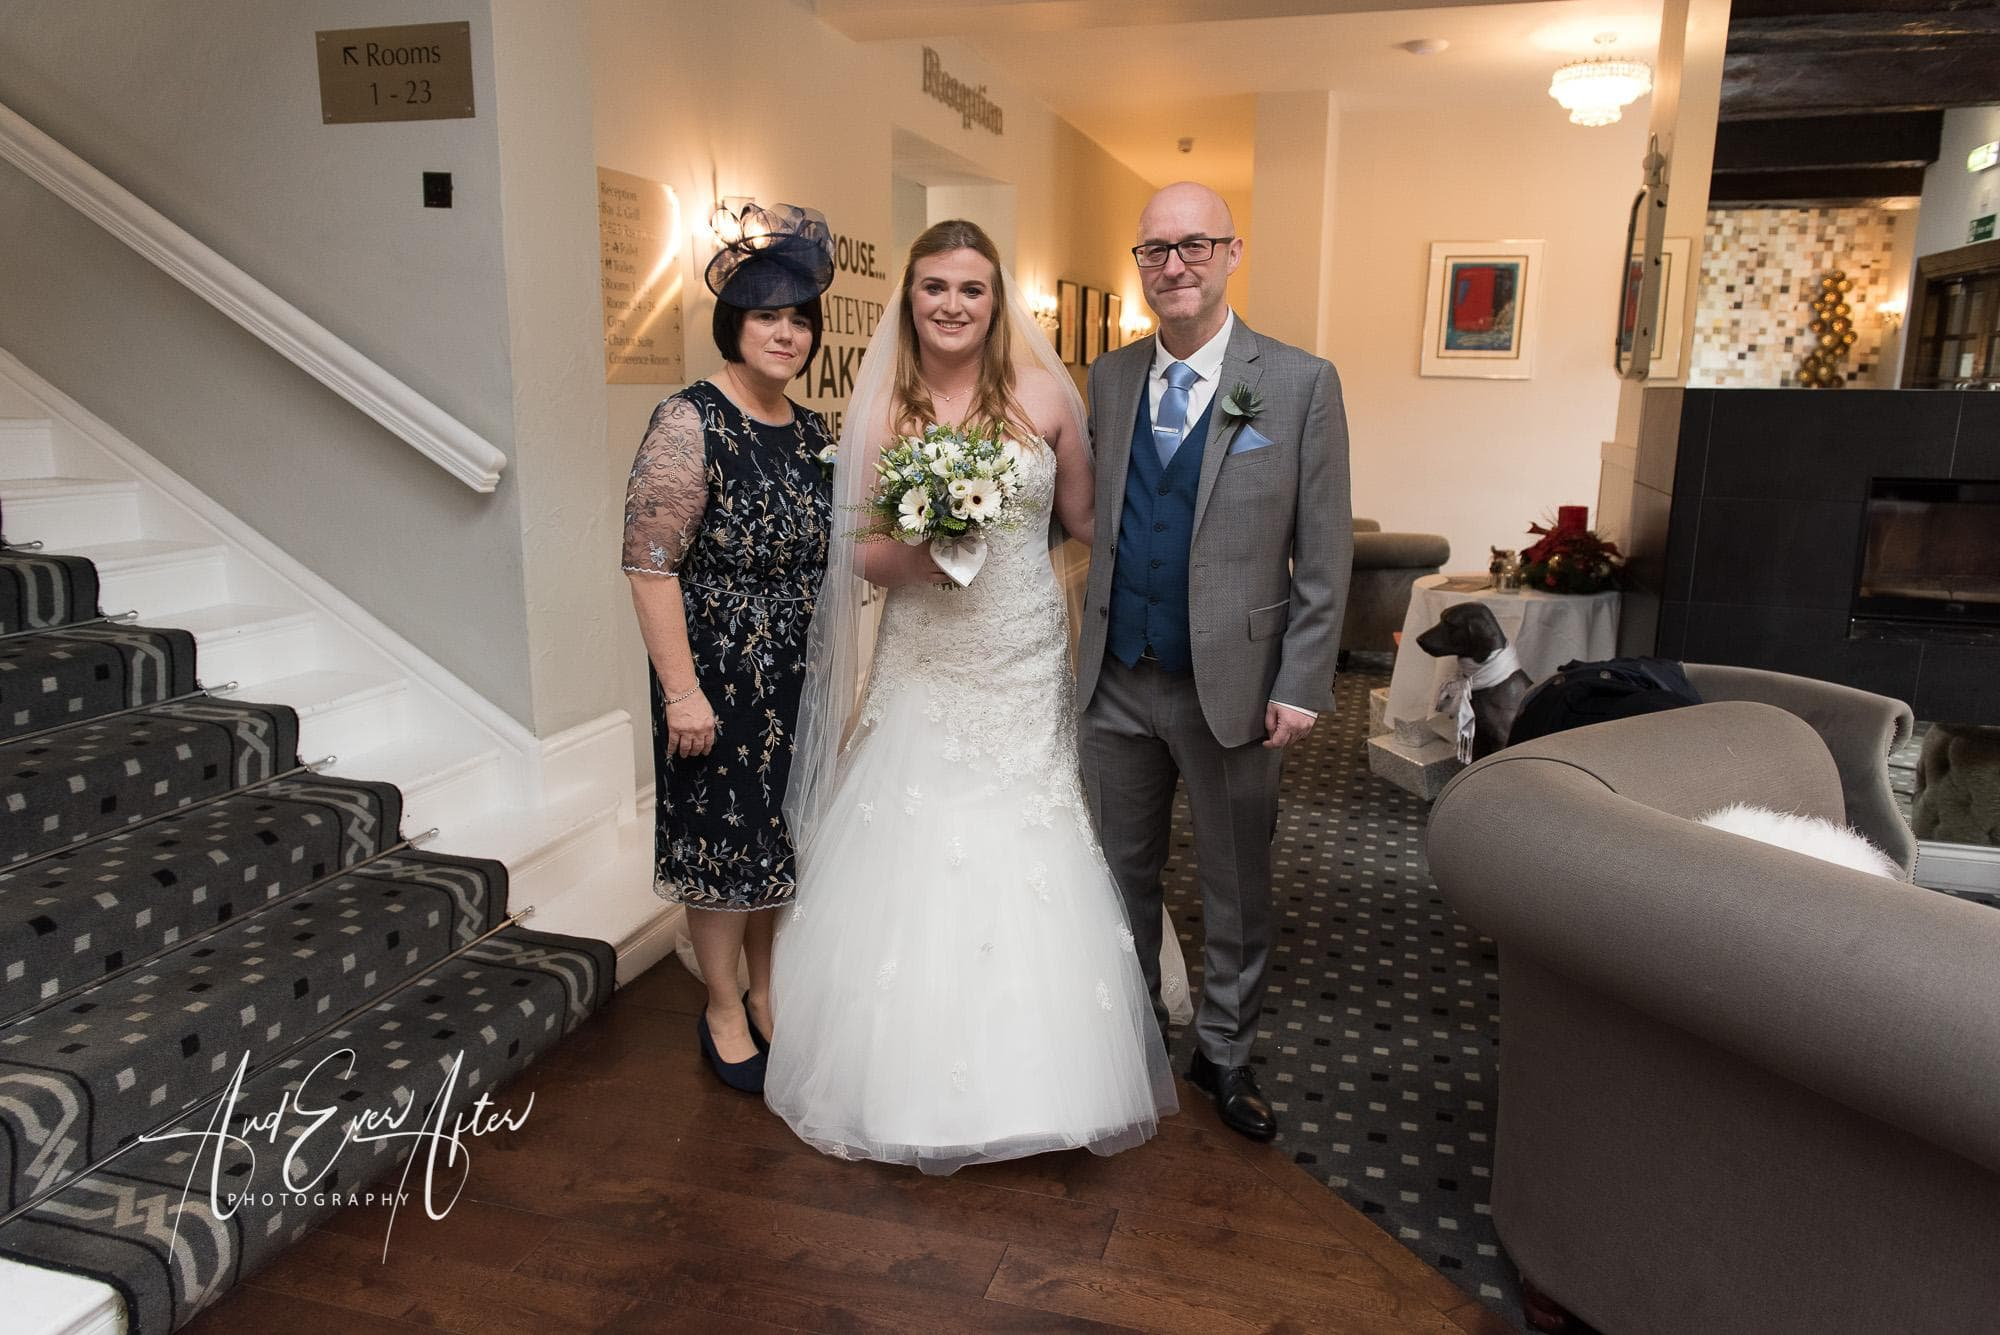 bride, wedding day, mother of the bride, father of the bride